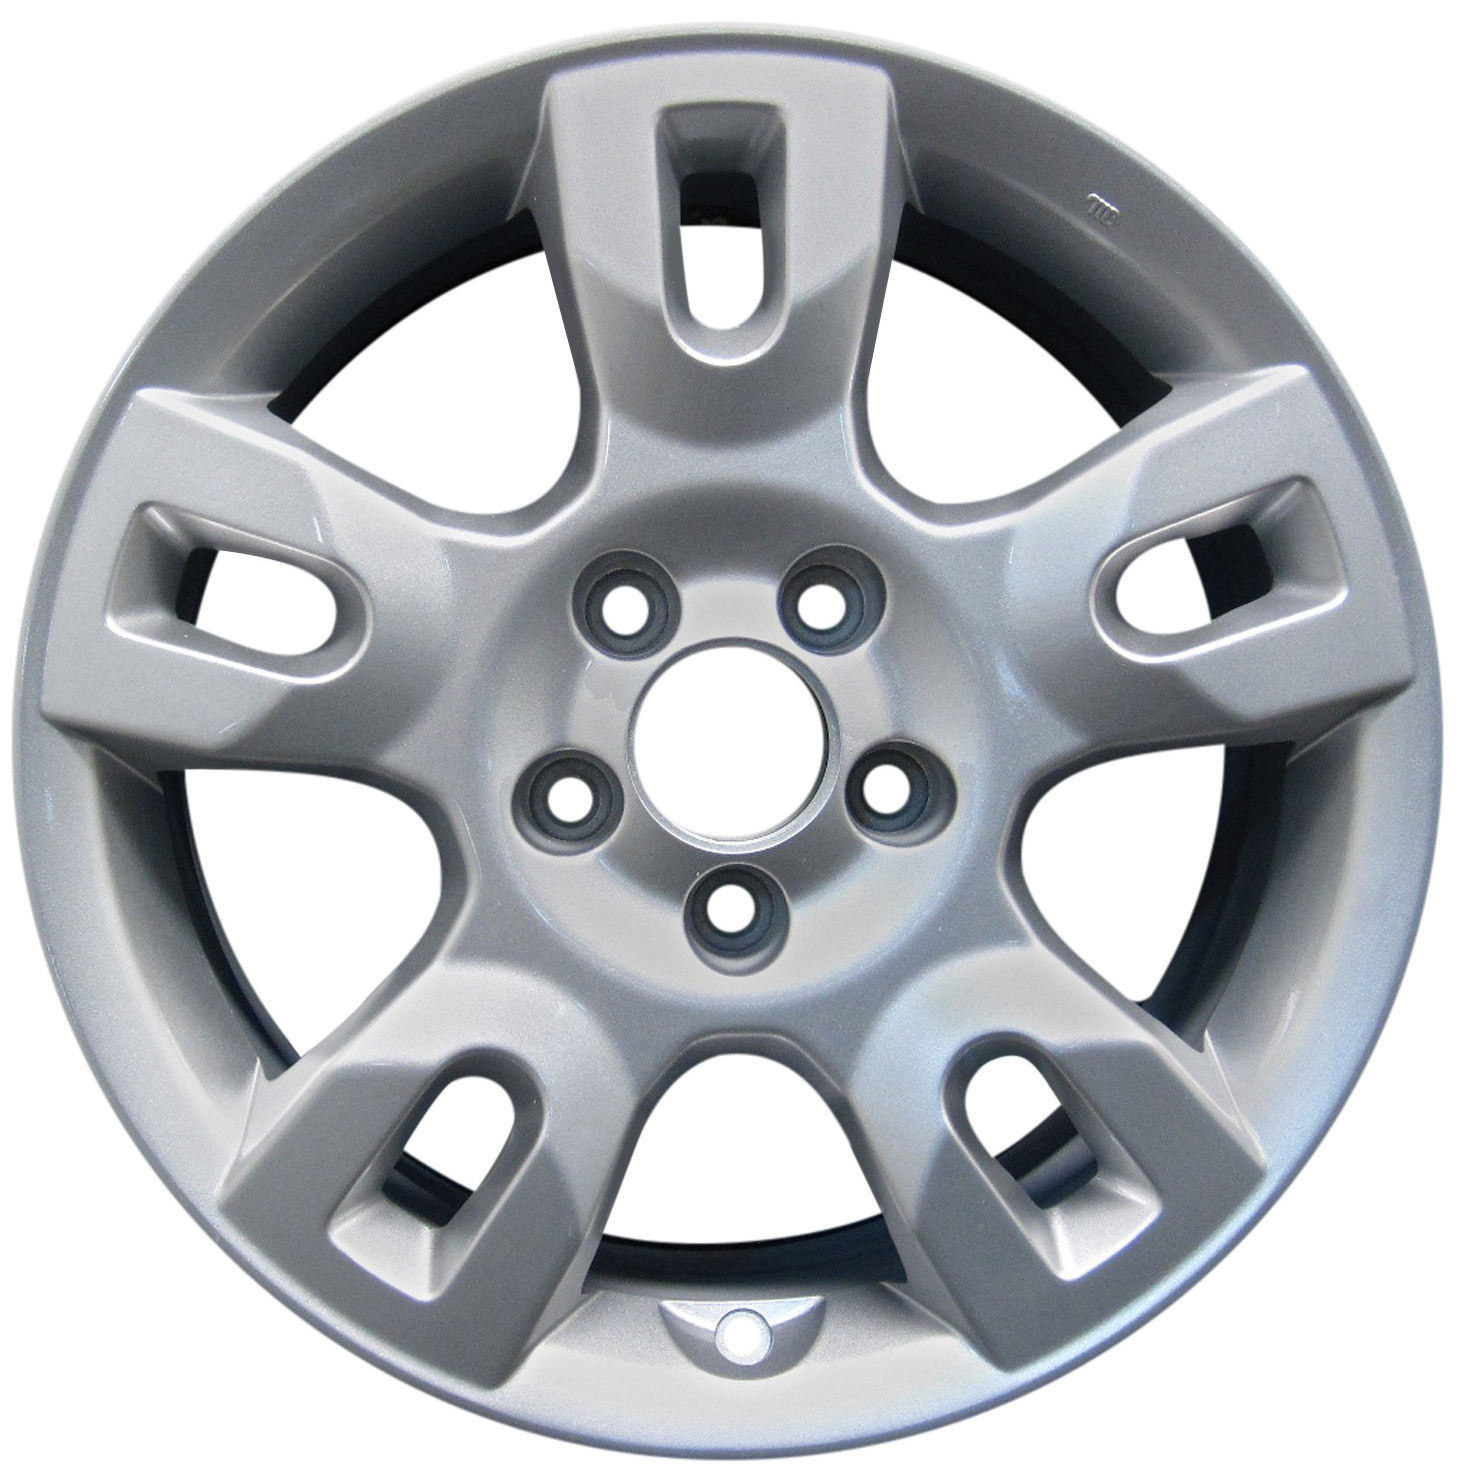 "Acura Tl 2010 17 Oem Wheel Rim: 17"" 17x6.5 OEM Alloy Wheel Rim For 2004 2005 2006 Acura"